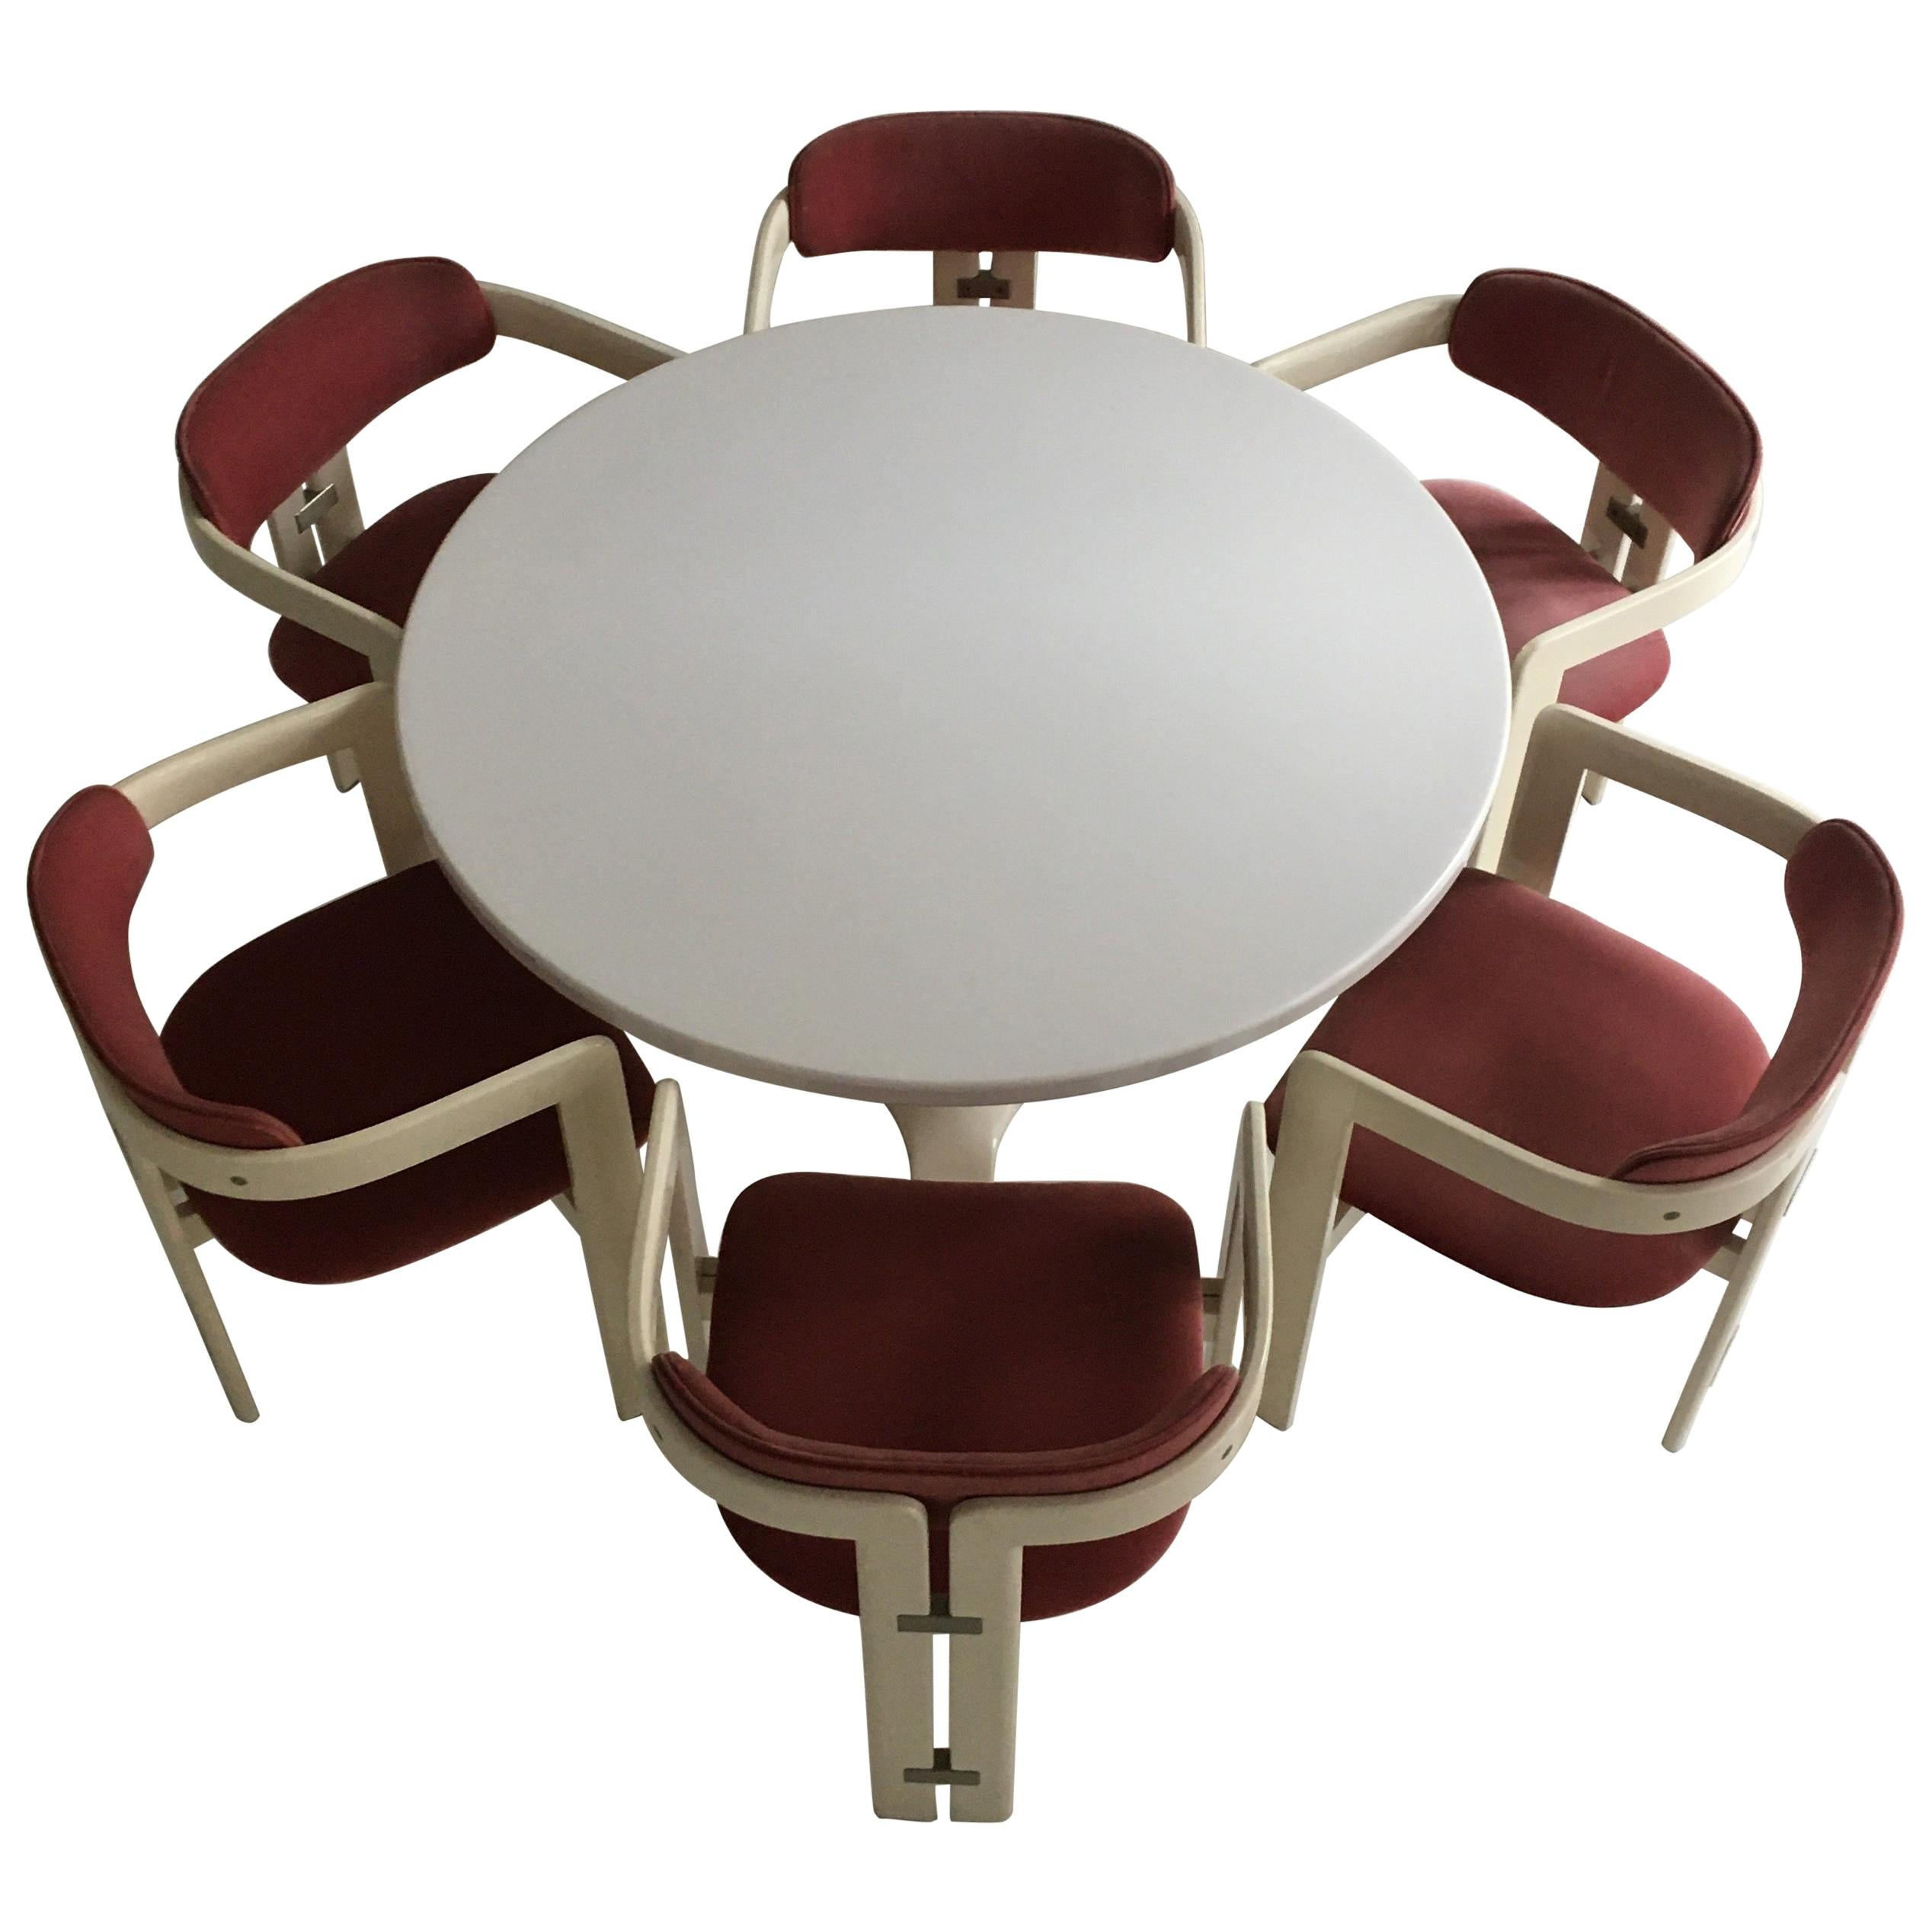 Pamplona Dining Chairs by Augusto Savini and Dining Table by Anna Castelli